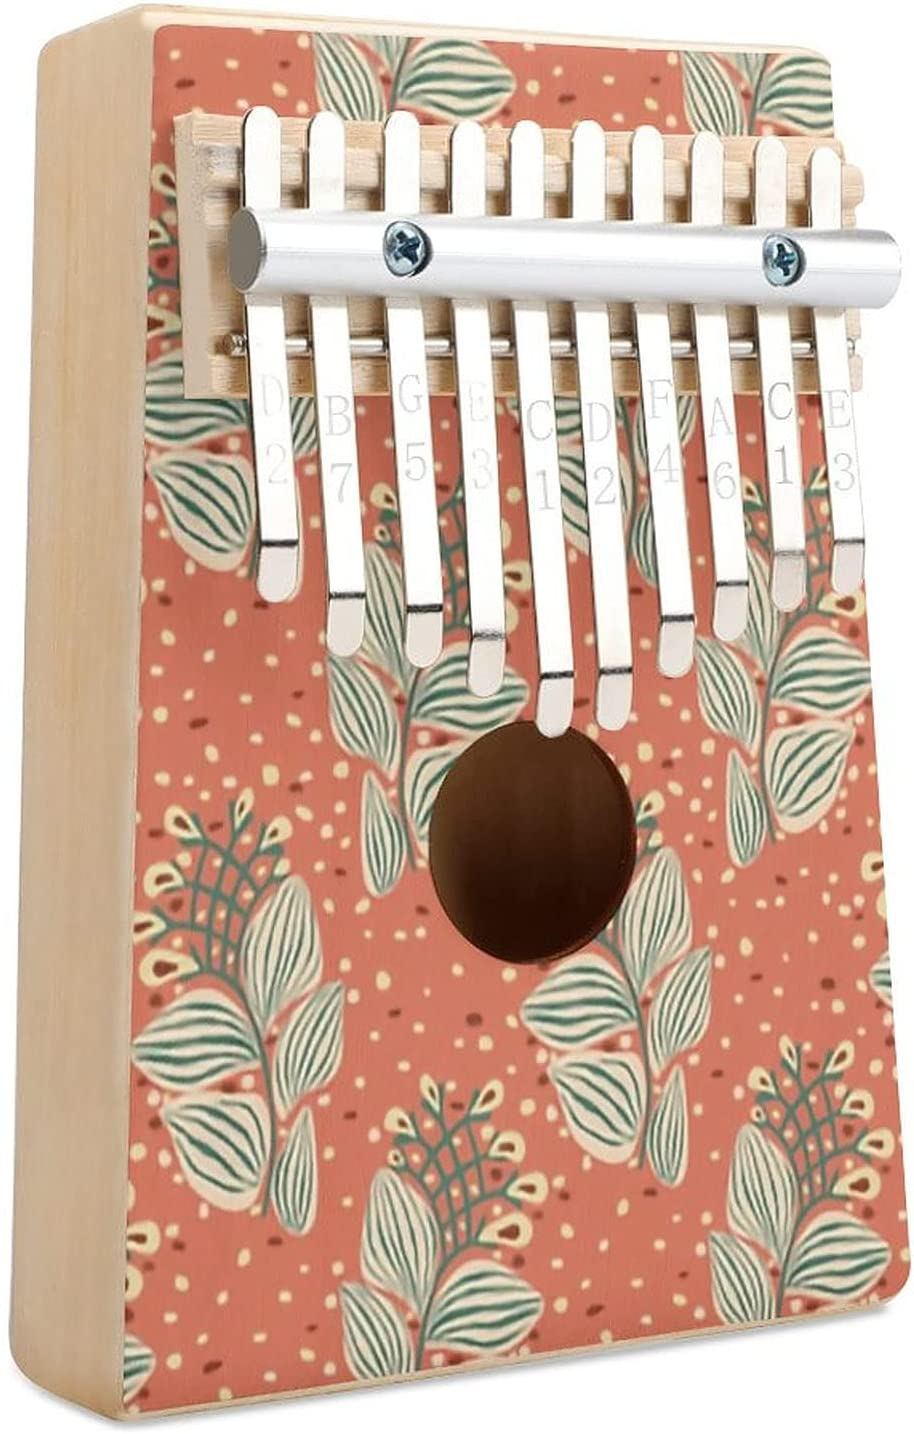 Cats Low price Coord 1B Kalimba Thumb 25% OFF Piano Musical Key In 10 Finger